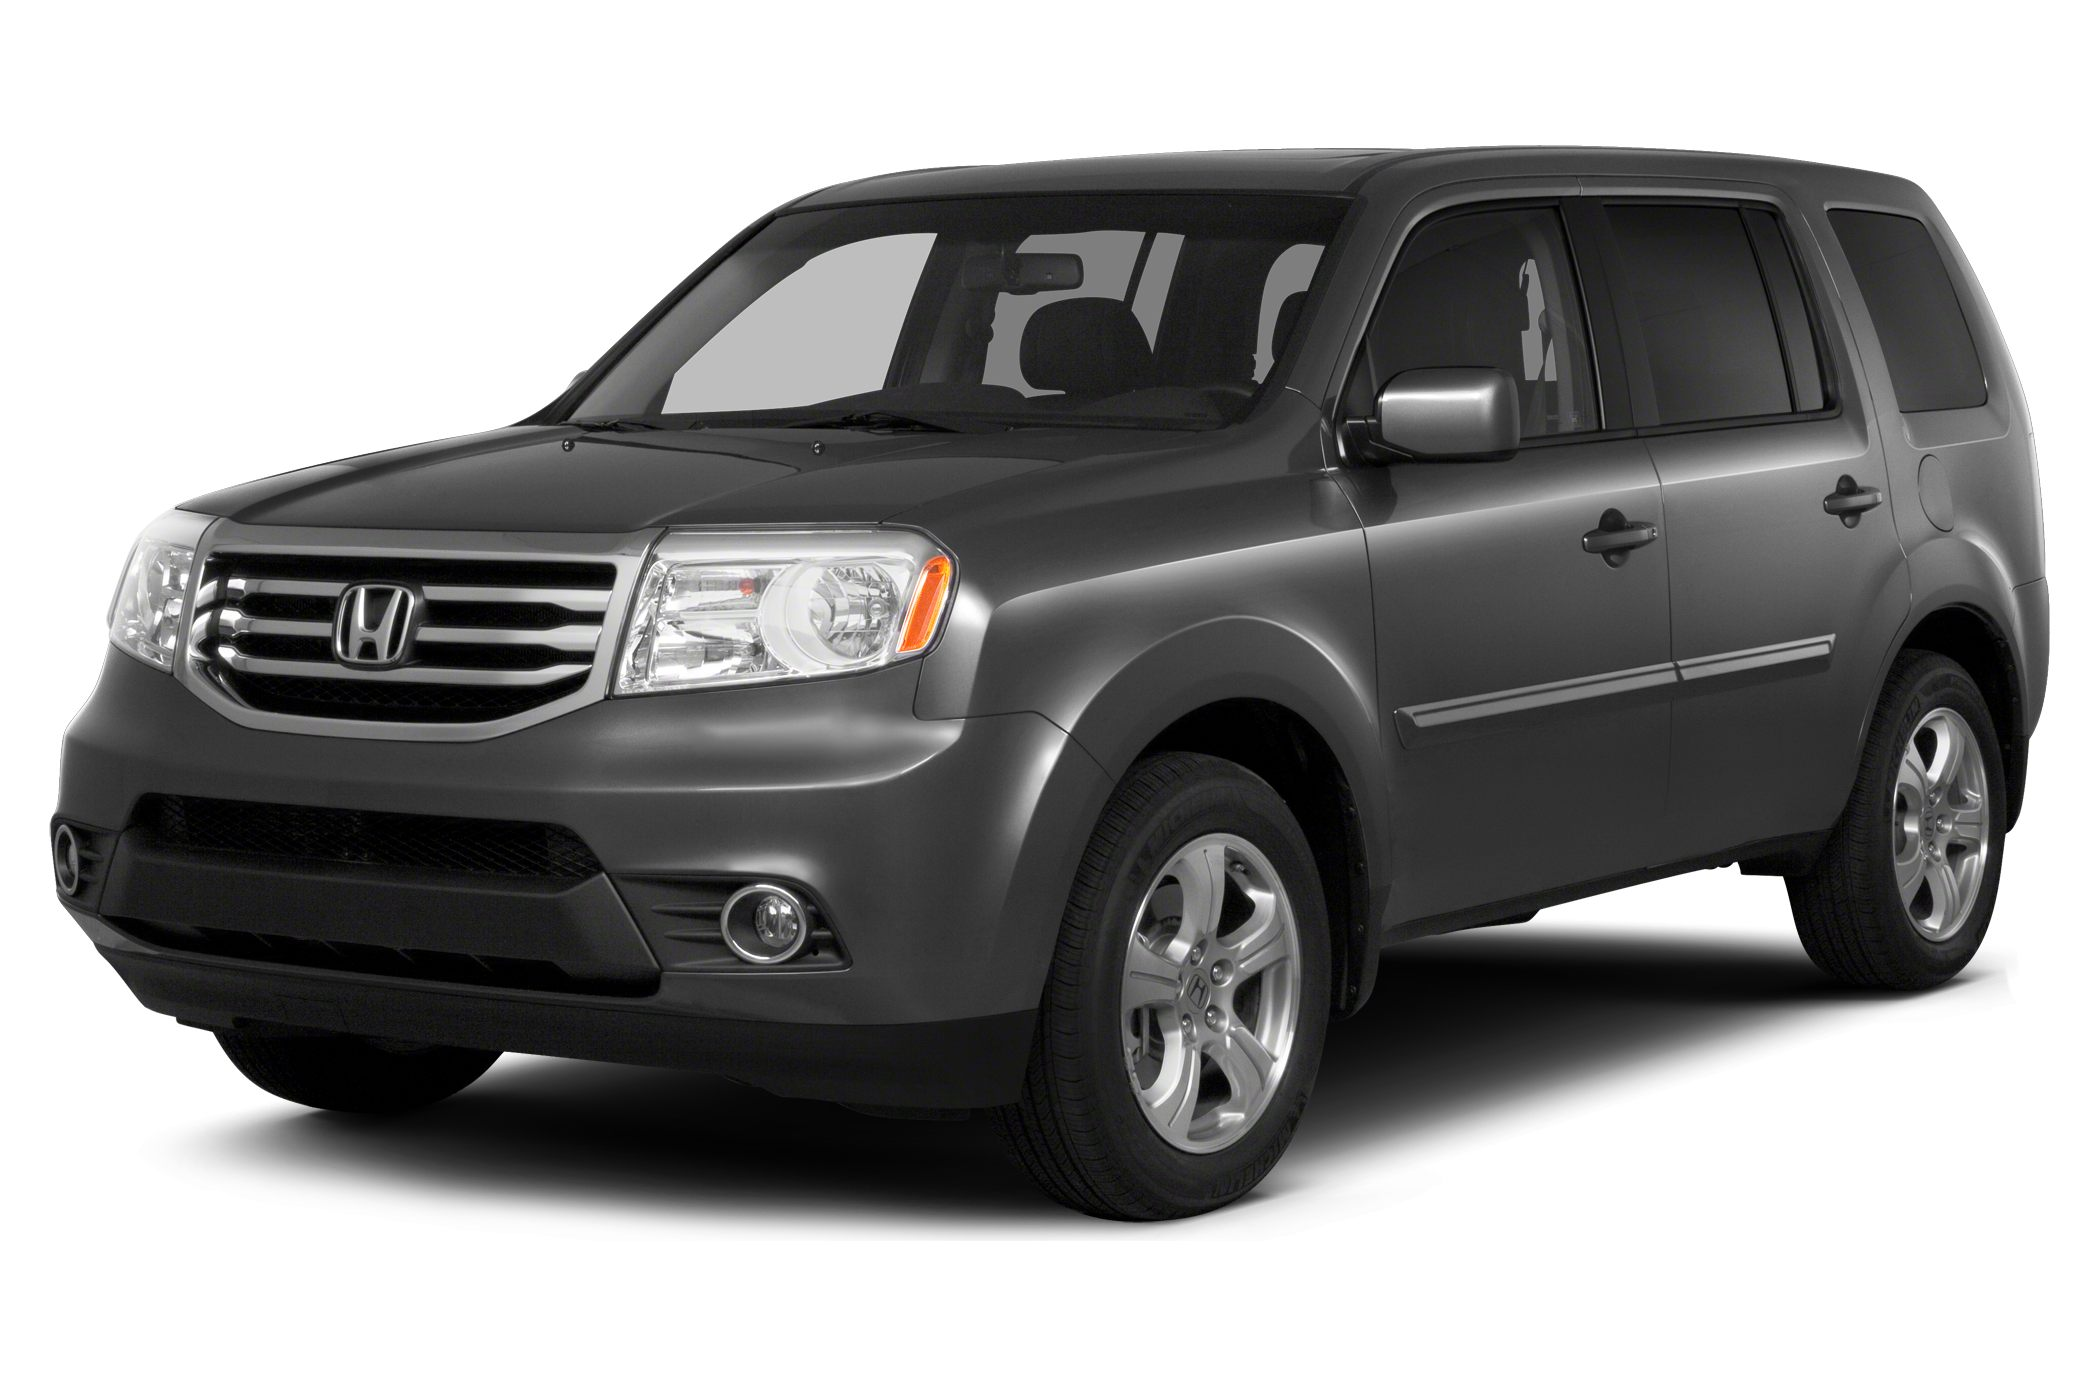 2015 Honda Pilot EX-L SUV for sale in Fayetteville for $38,937 with 0 miles